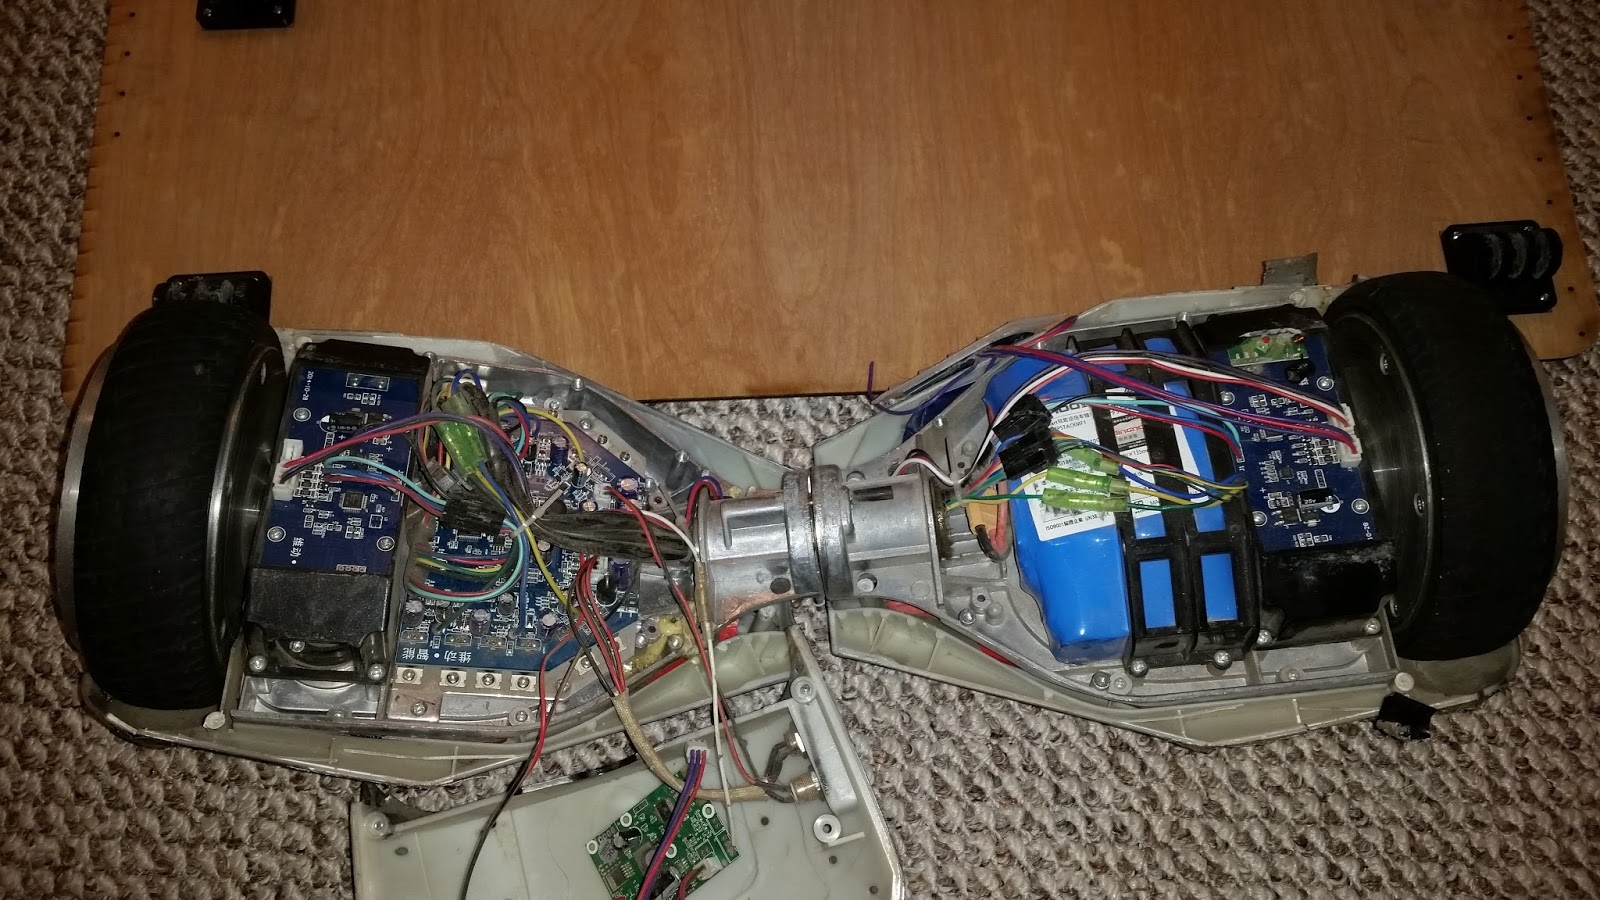 Optical Mouse Hacking Wildcircuits Wiring Diagram I Started Off By Strapping Everything Together In The Most Dangerous Manner Possible To See If It Would Still Work